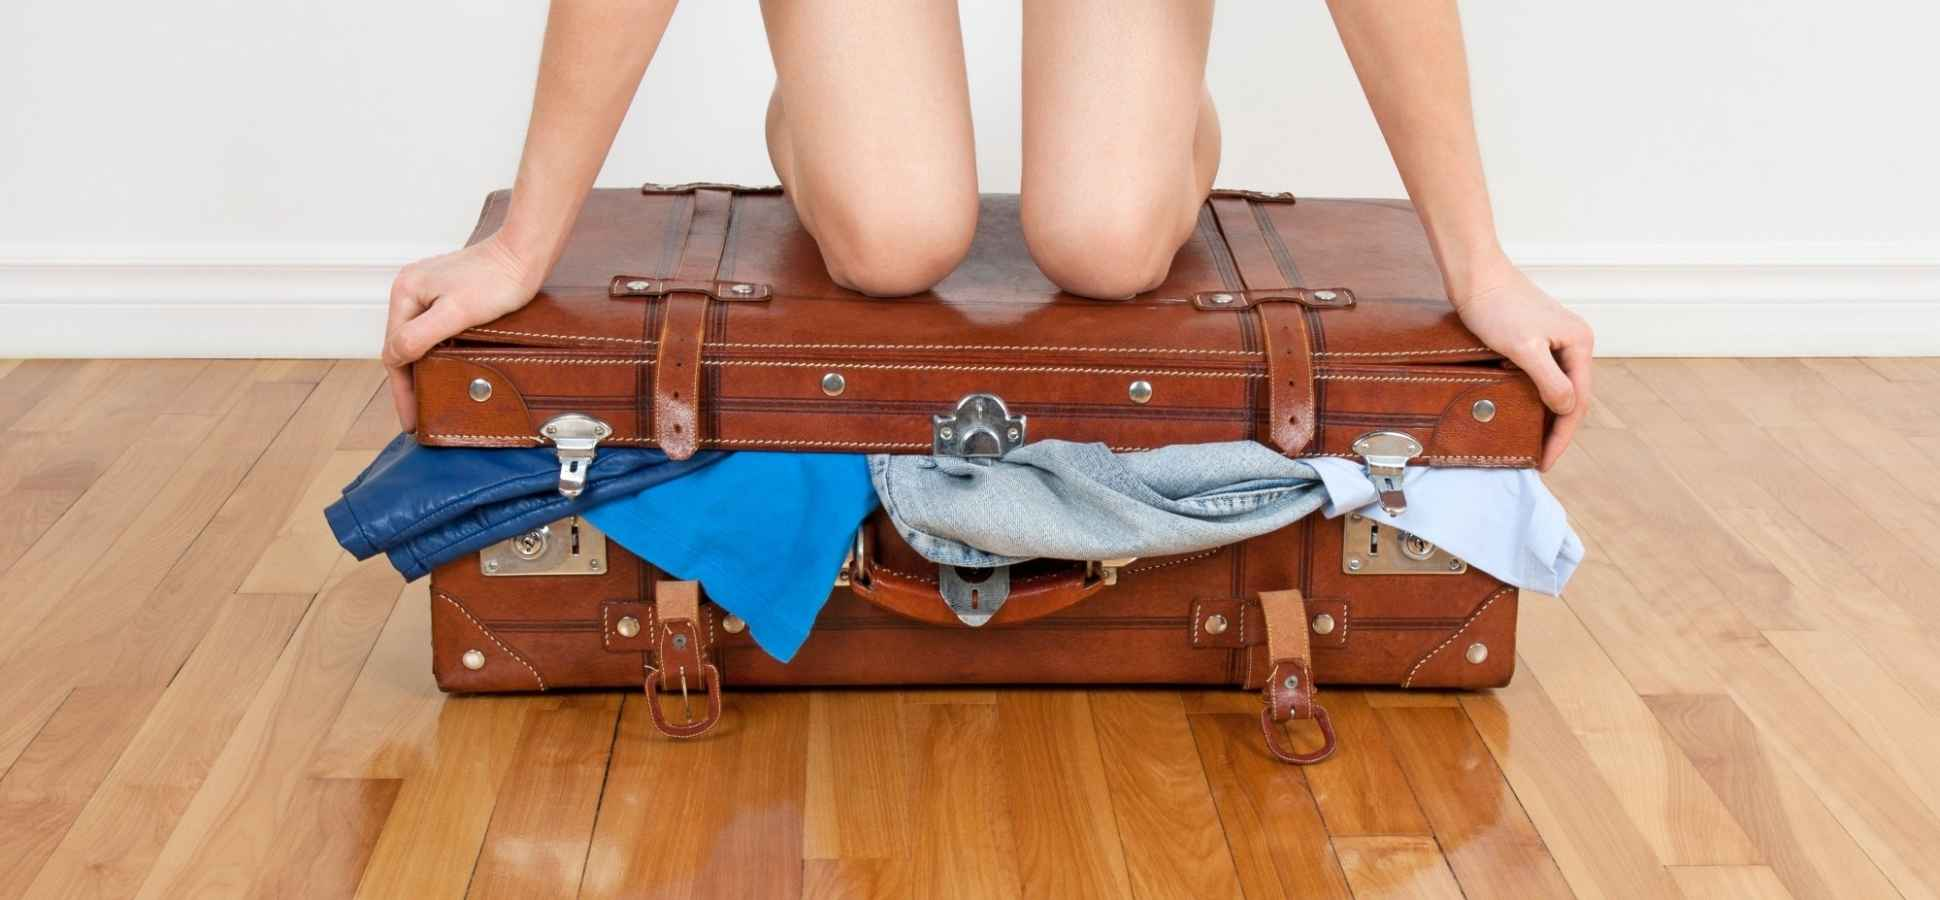 Attention, Travelers: This May Be the Last Piece of Luggage You'll Ever Need